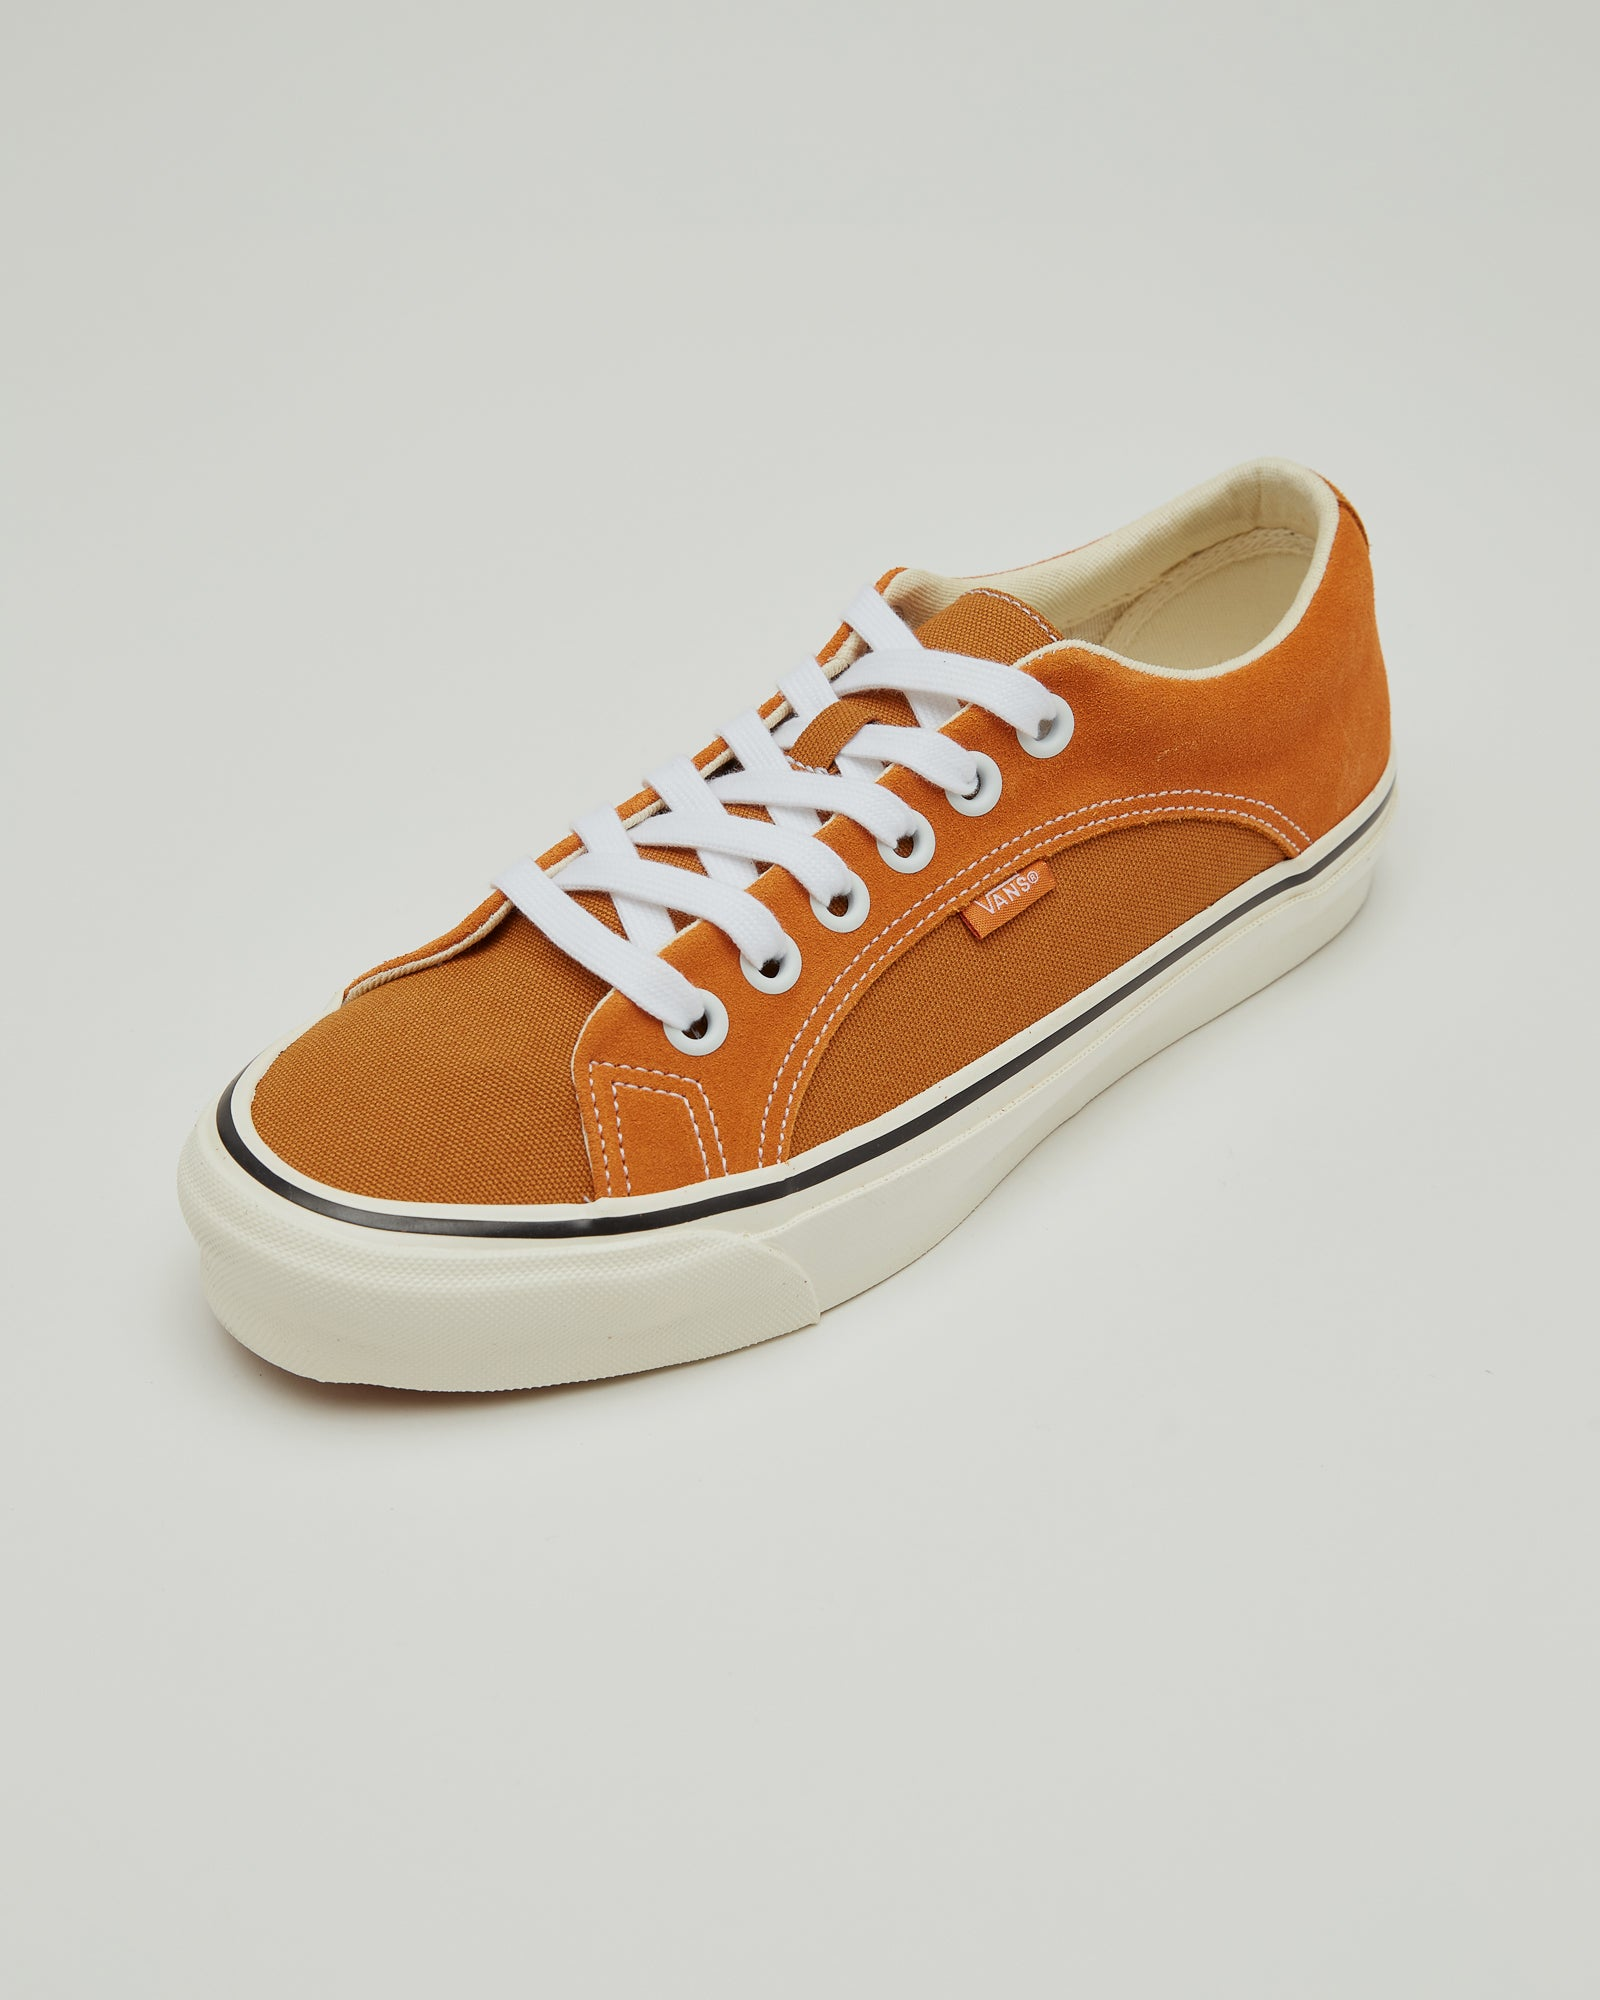 Lampin LX Sneakers in Orange and Tan